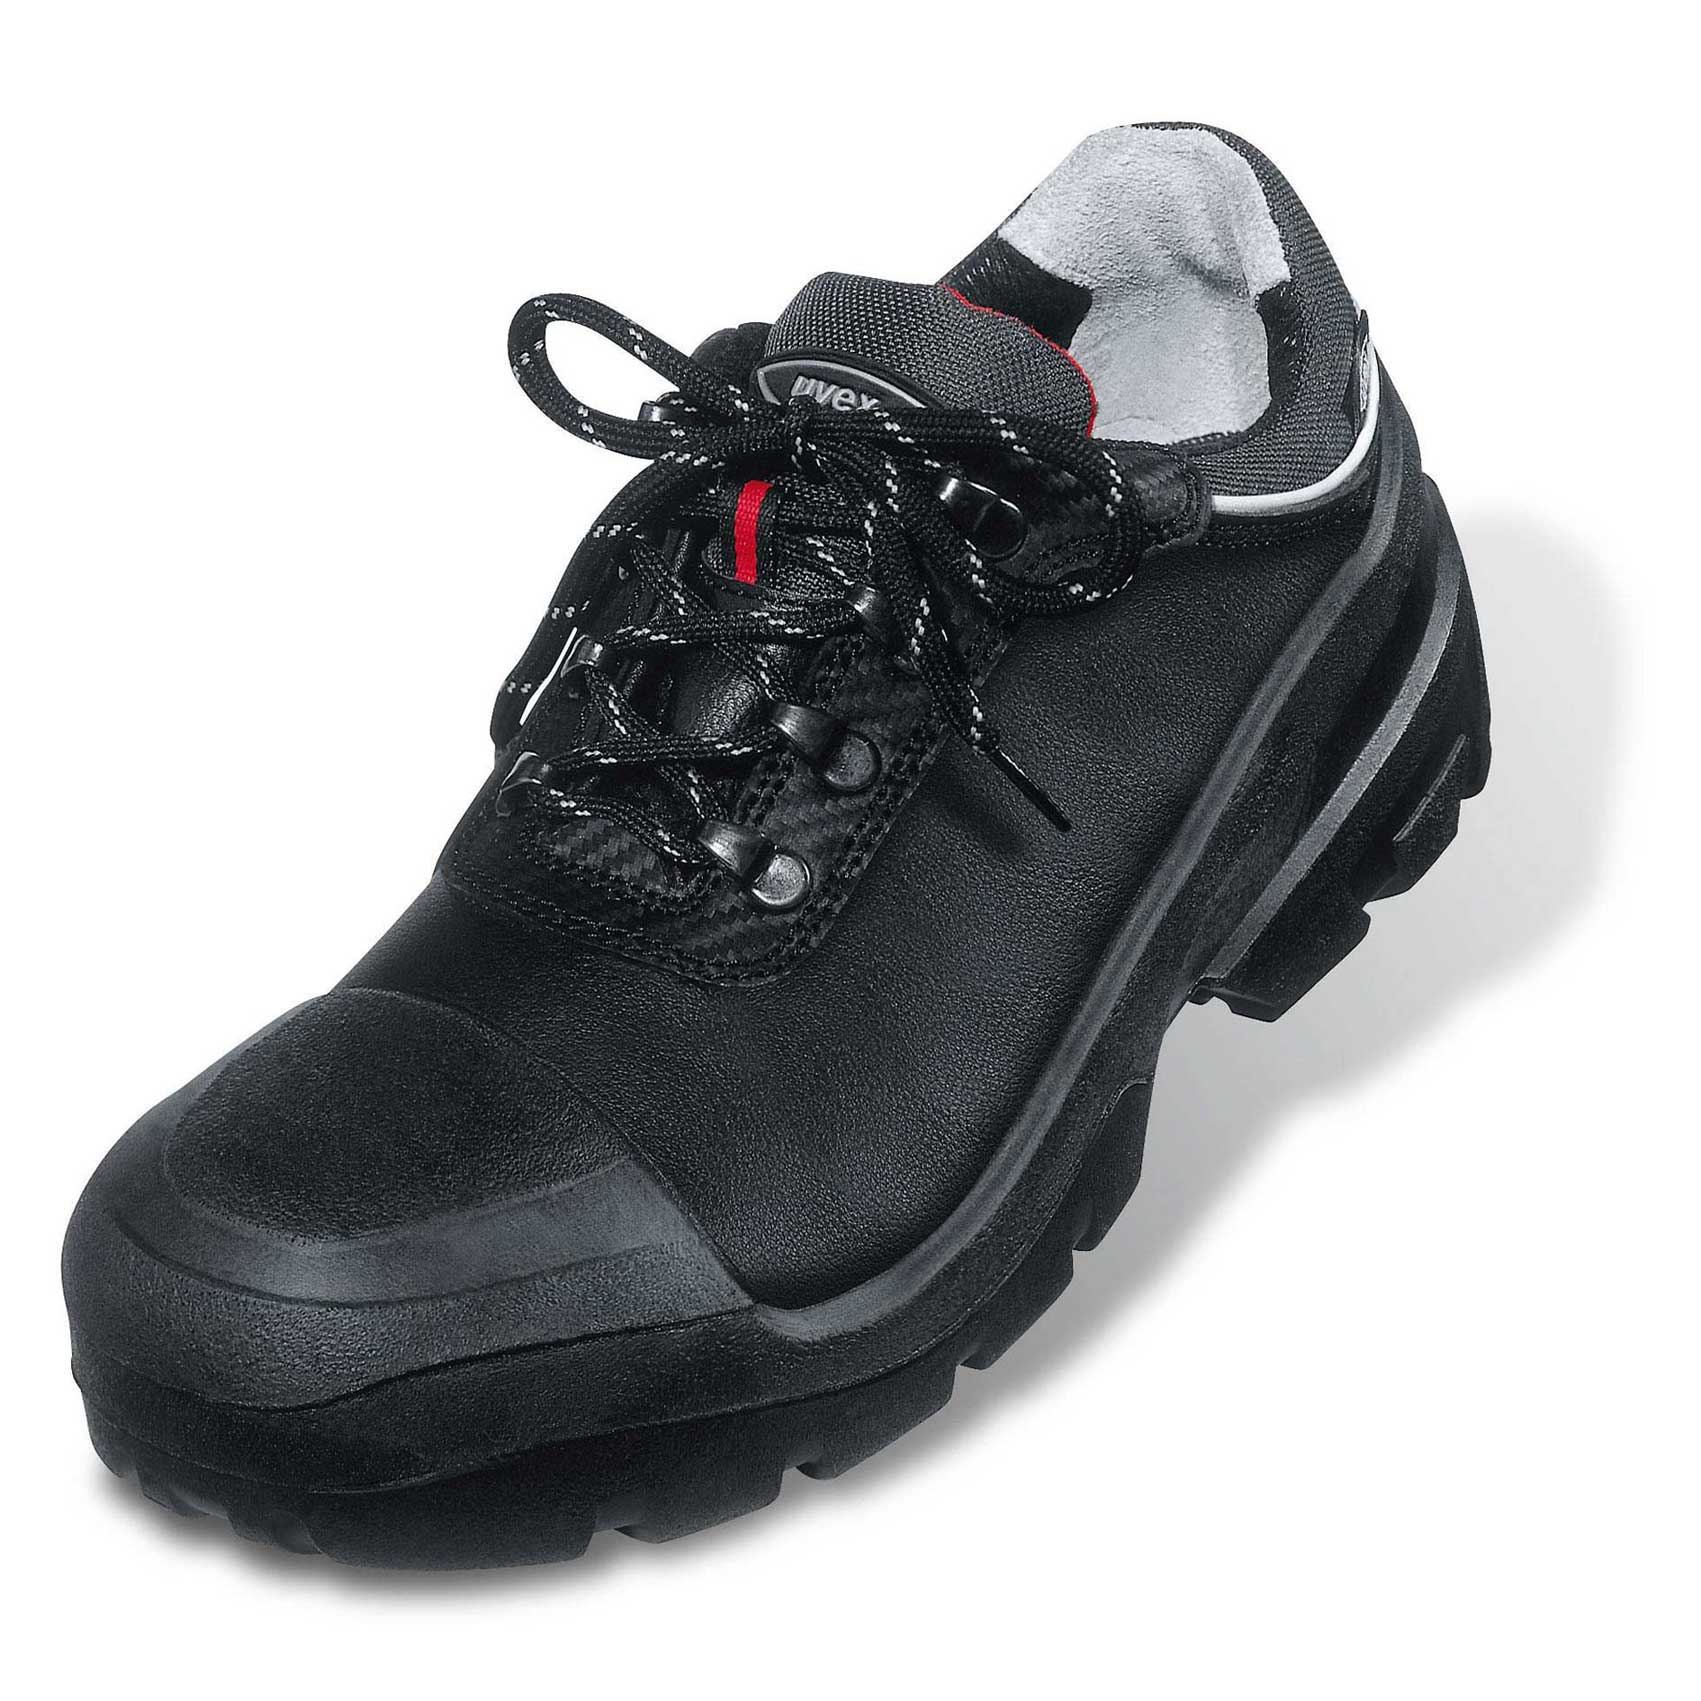 Uvex Quatro Pro S3 Src Shoe Safety Shoes Uvex Safety